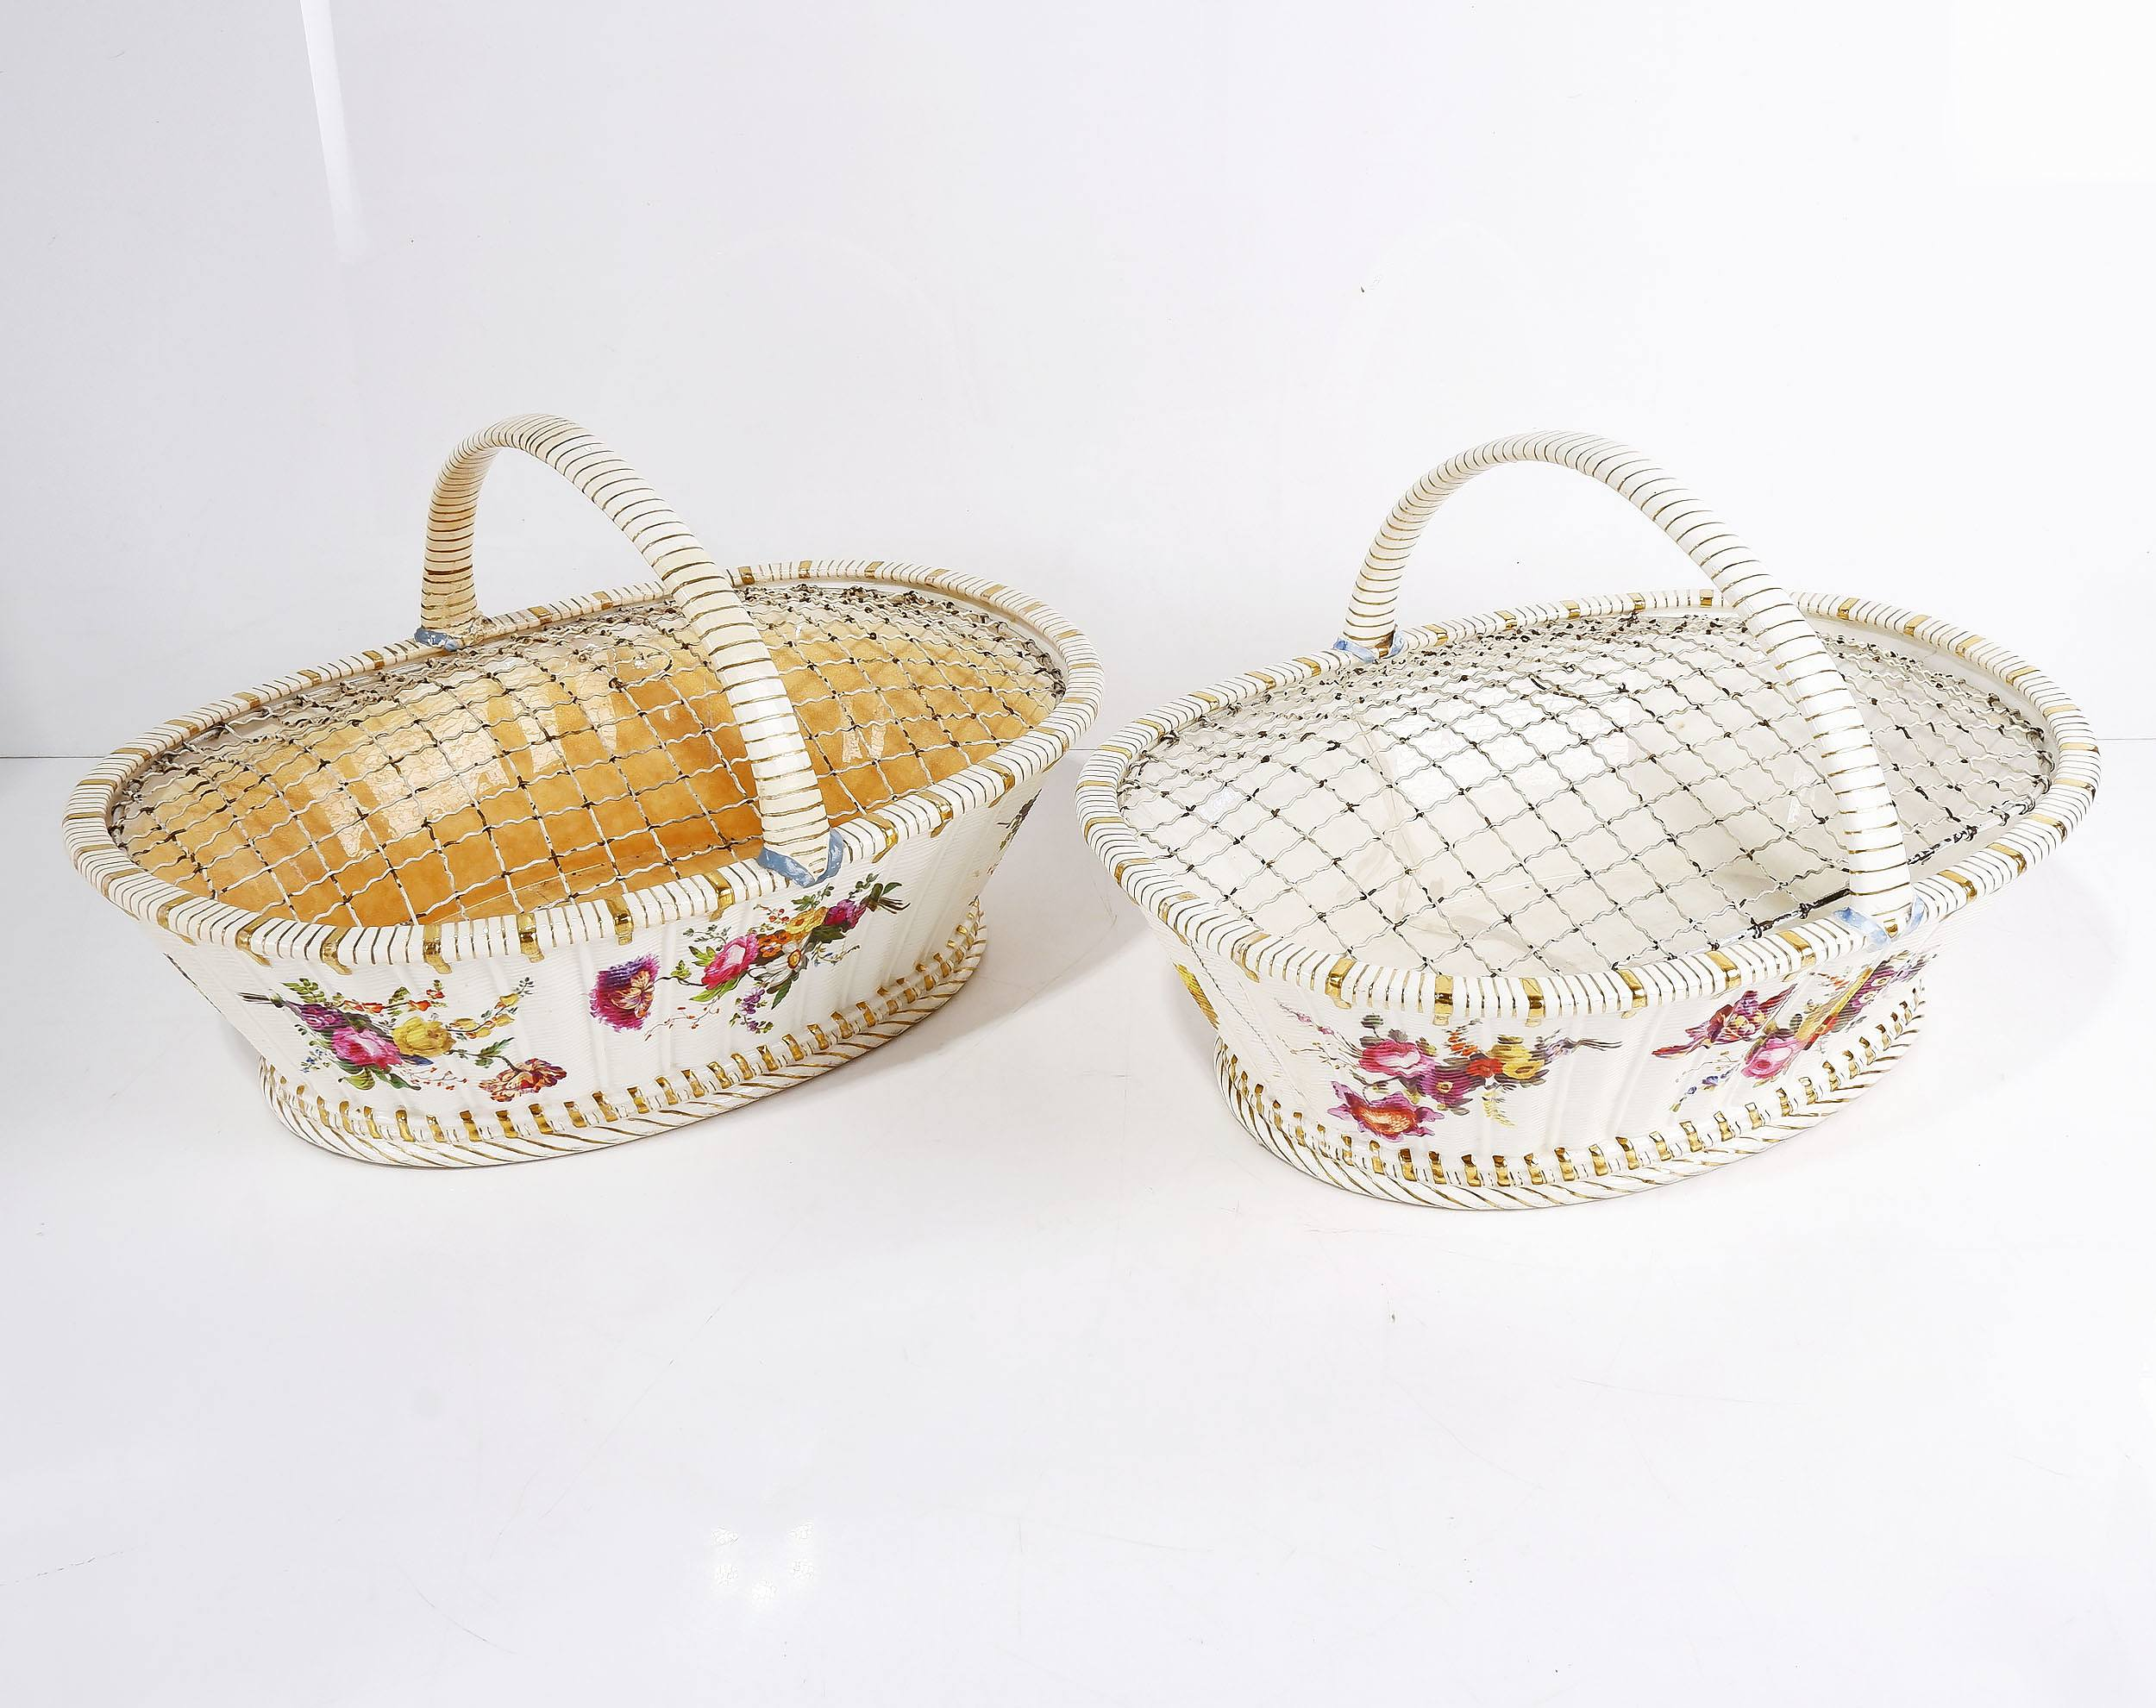 'Pair of 19th Century English Porcelain Cake Baskets'